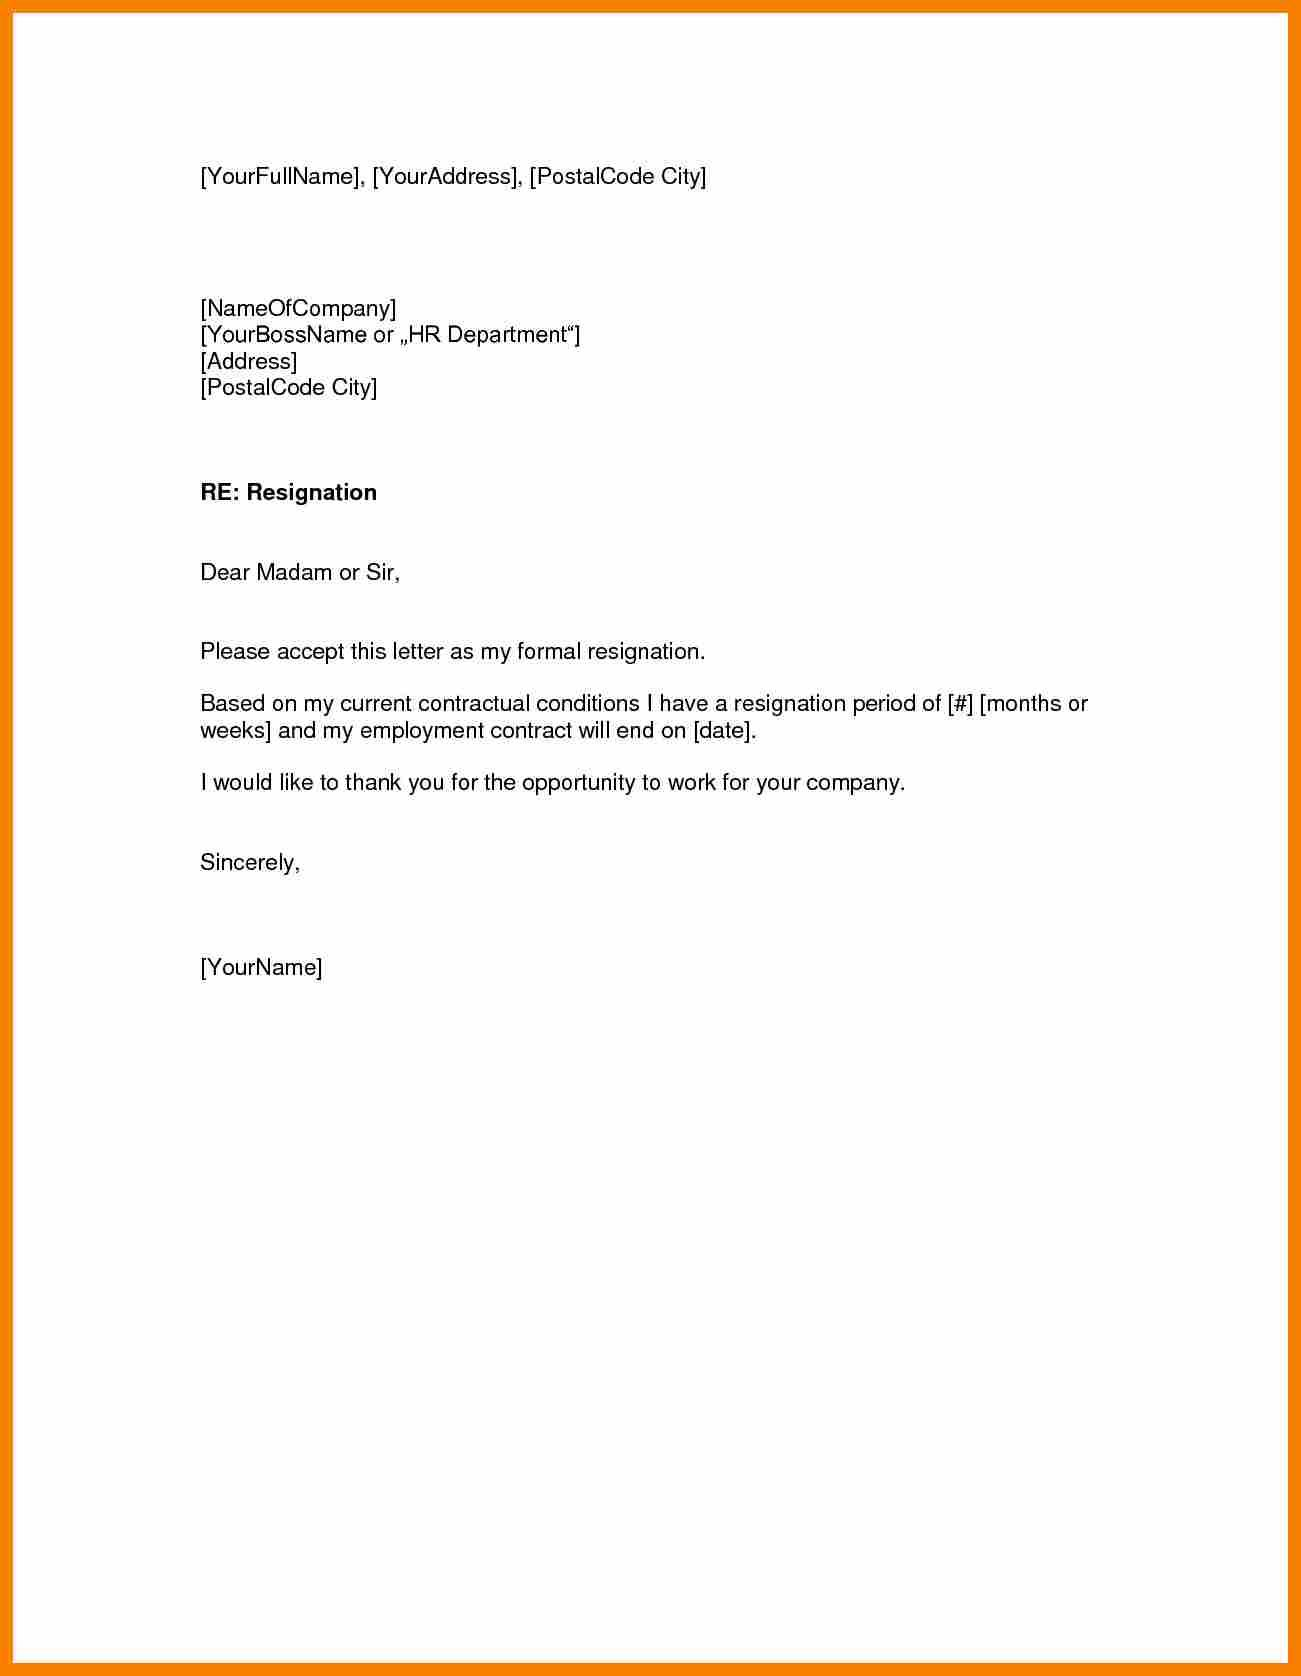 Consent letter format hindi resignation sample gallery plaint consent letter format hindi resignation sample gallery plaint spiritdancerdesigns Image collections